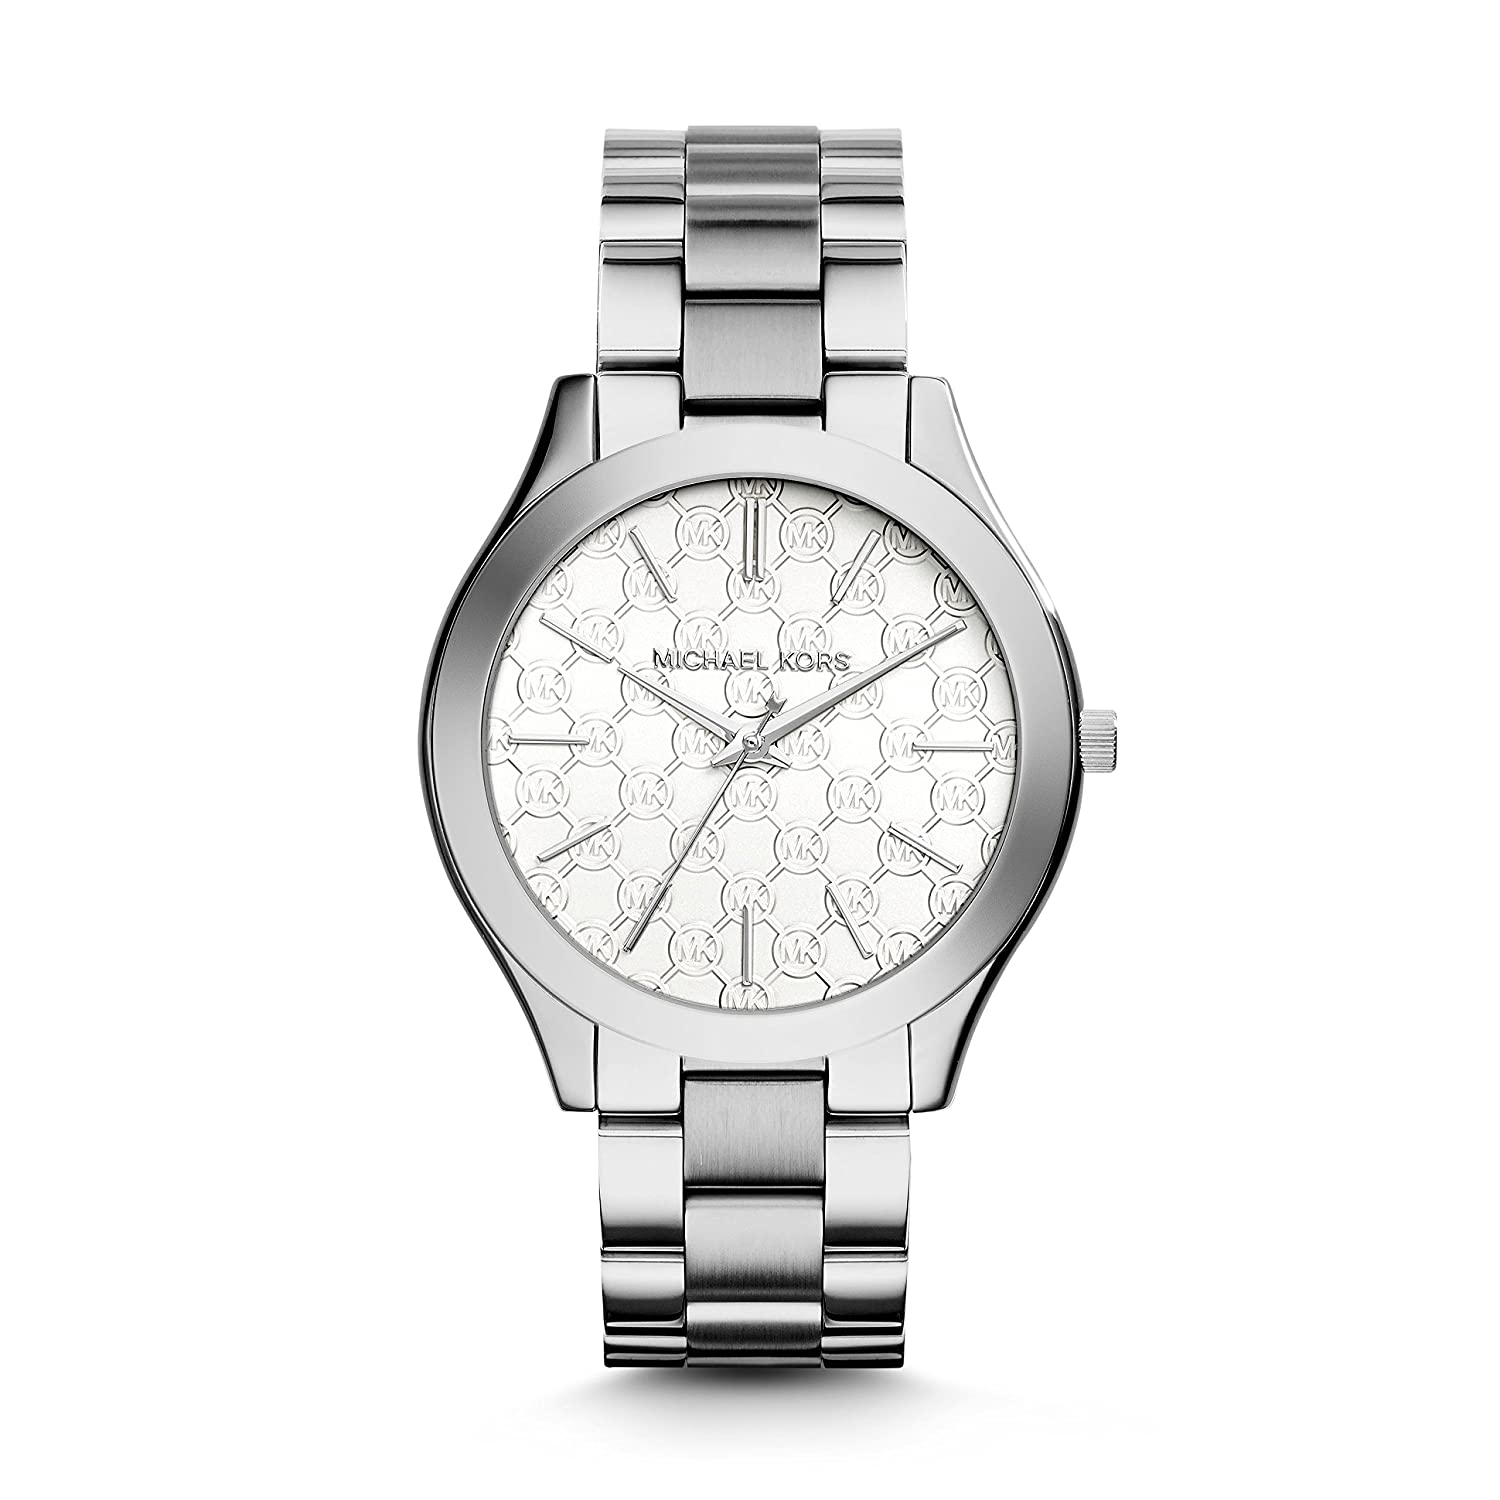 Michael Kors Women s Slim Runway Japanese Quartz Movement Stainless Steel Watch, Color Silver-Toned Model MK3371